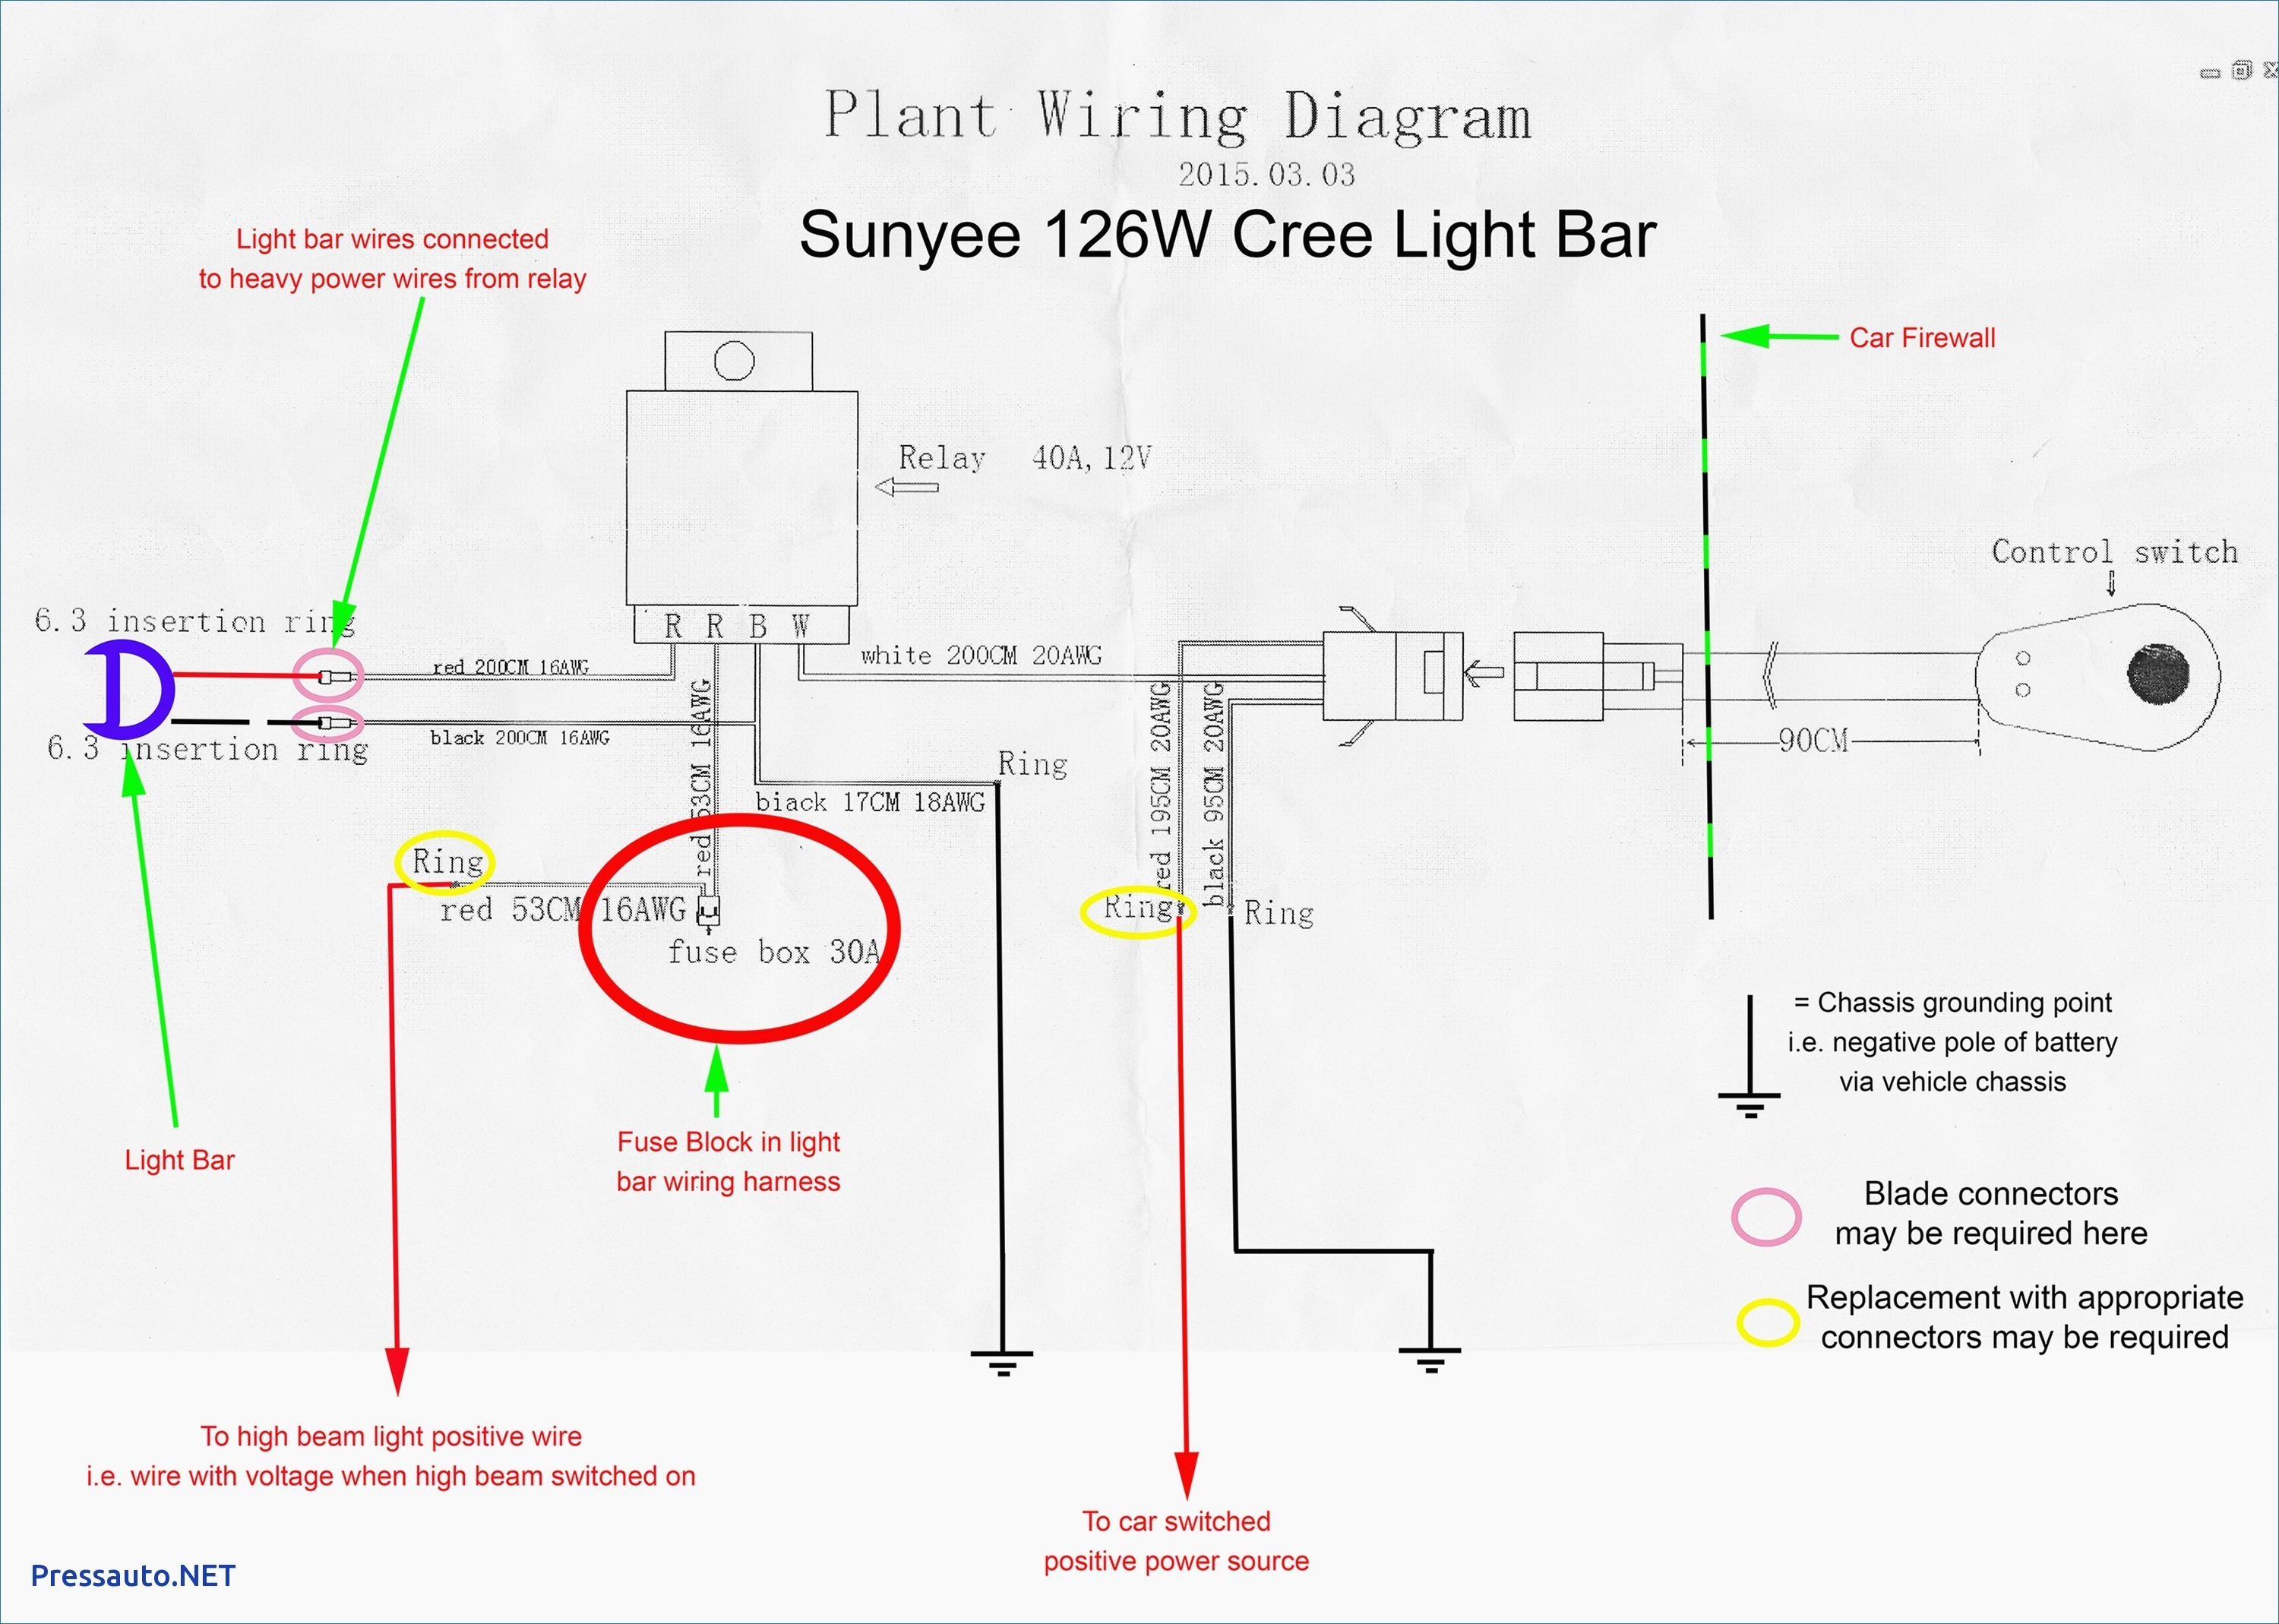 Led Fluorescent Tube Replacement Wiring Diagram Download